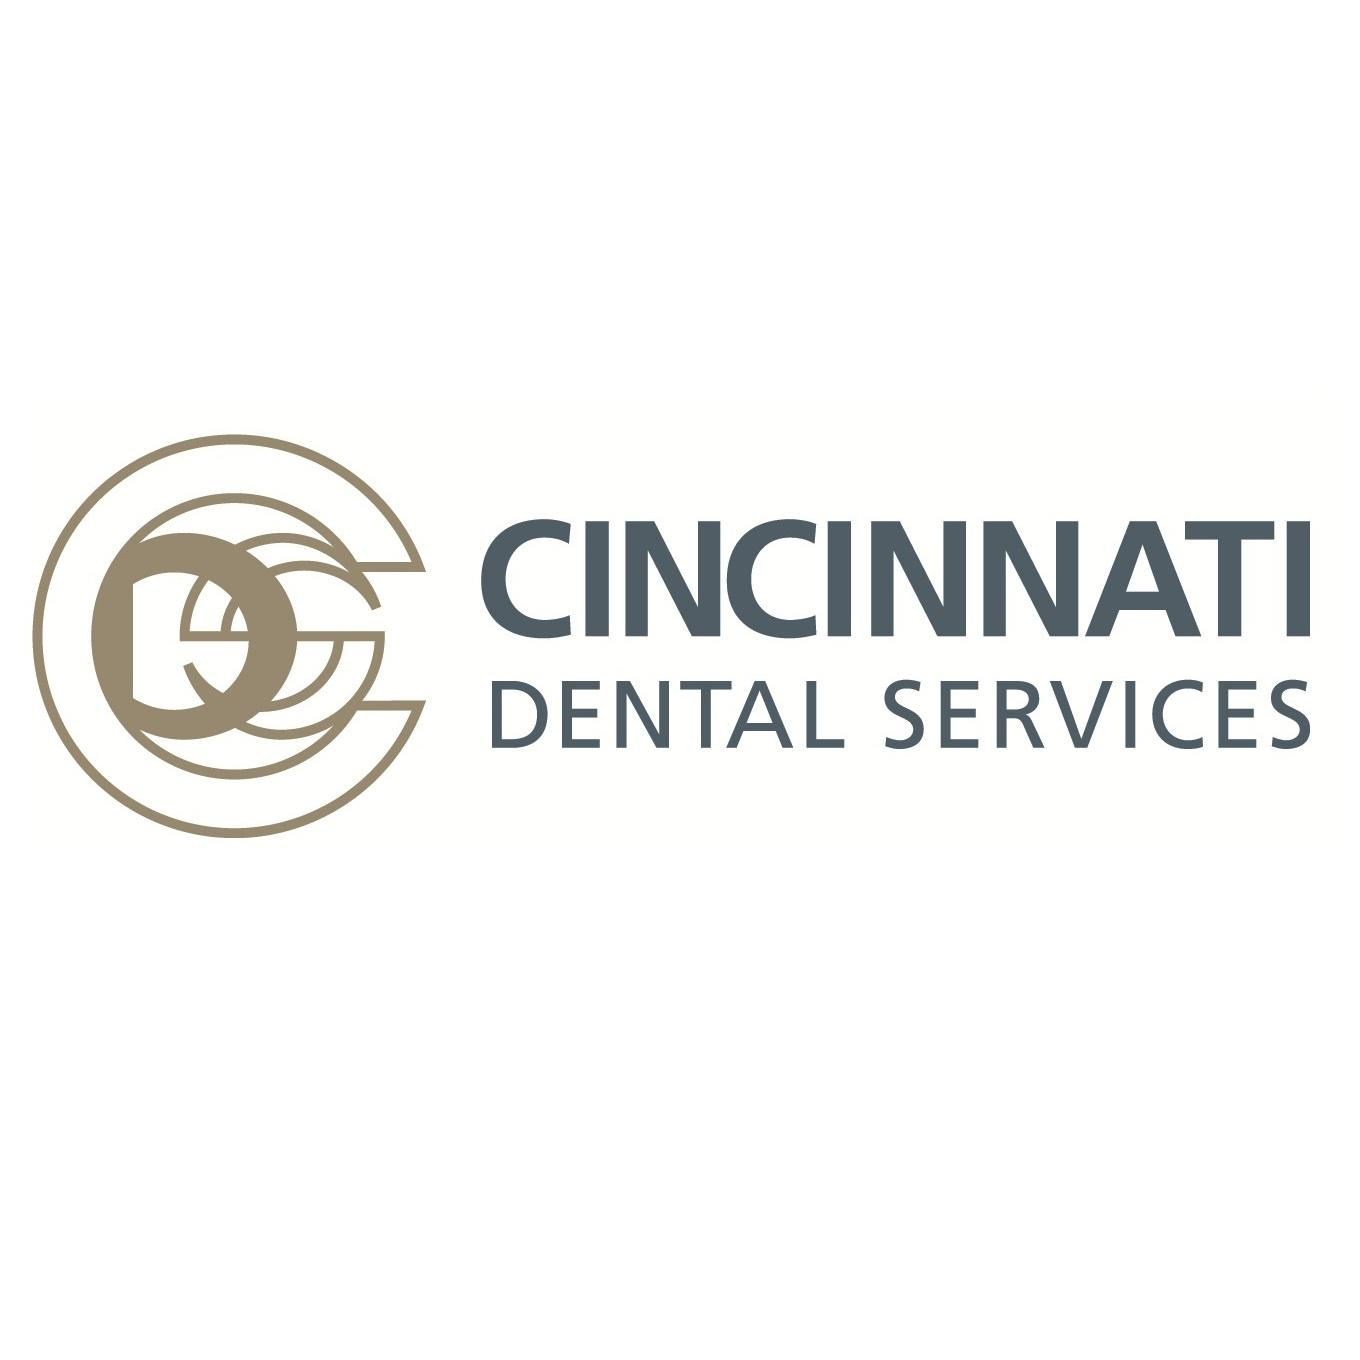 Cincinnati Dental Services Fairfield - Fairfield, OH - Dentists & Dental Services